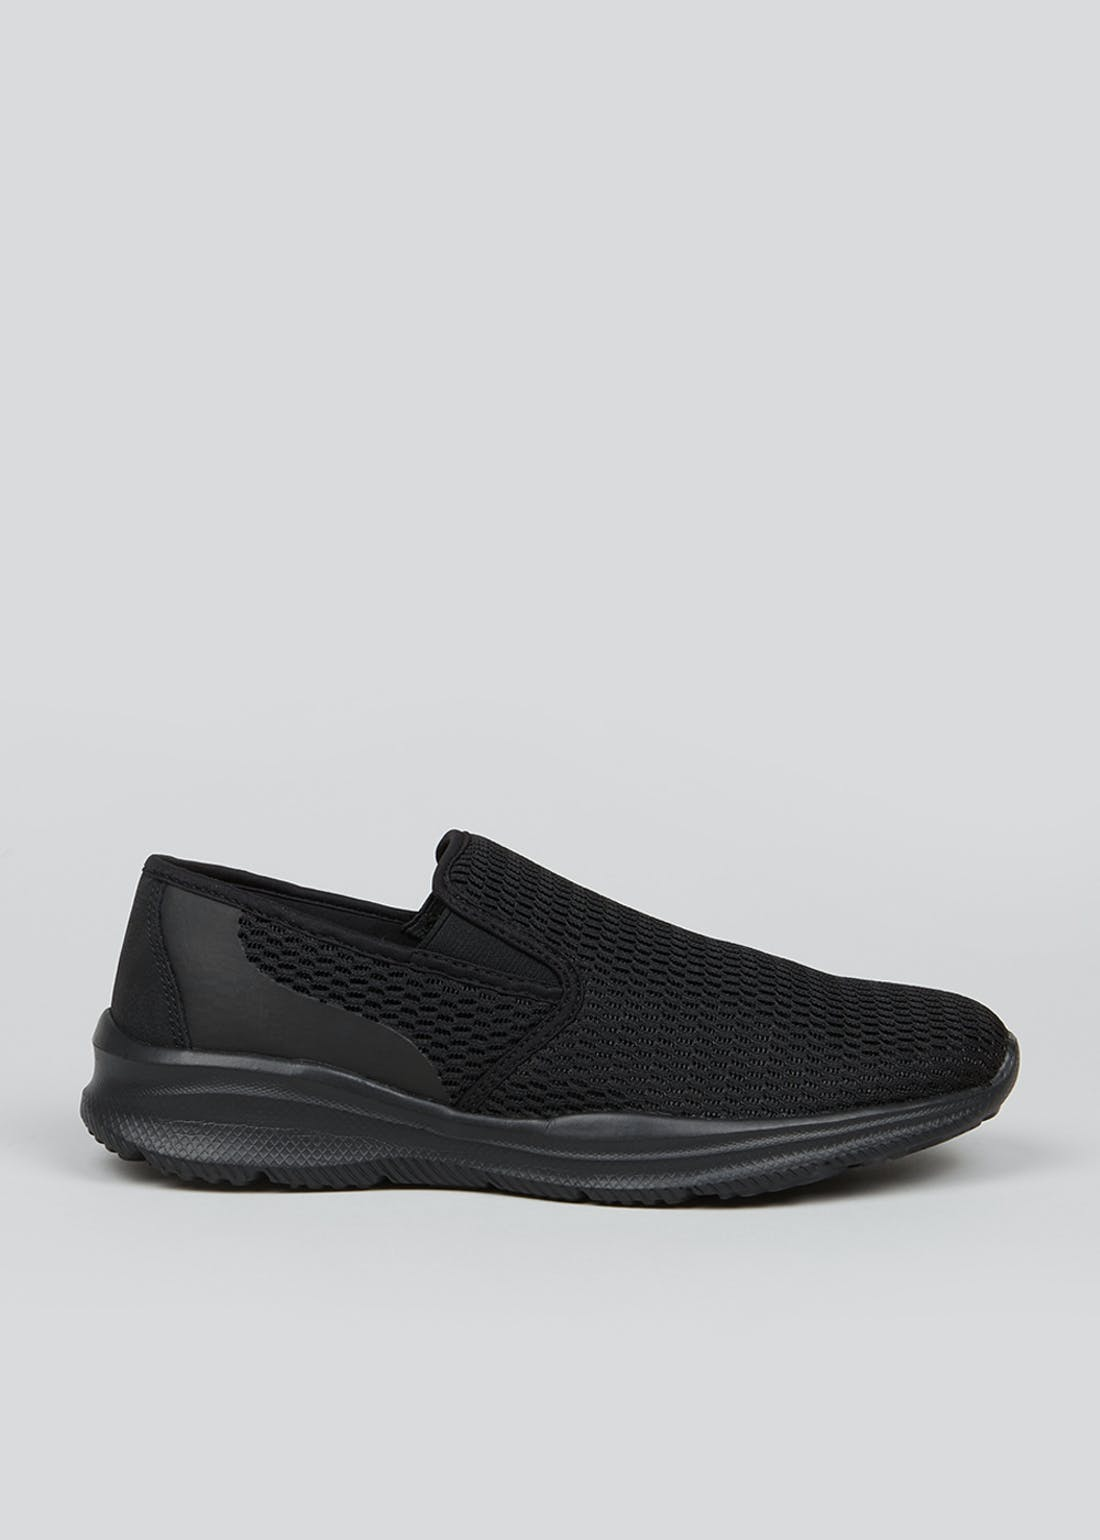 Soleflex Black Slip On Pumps